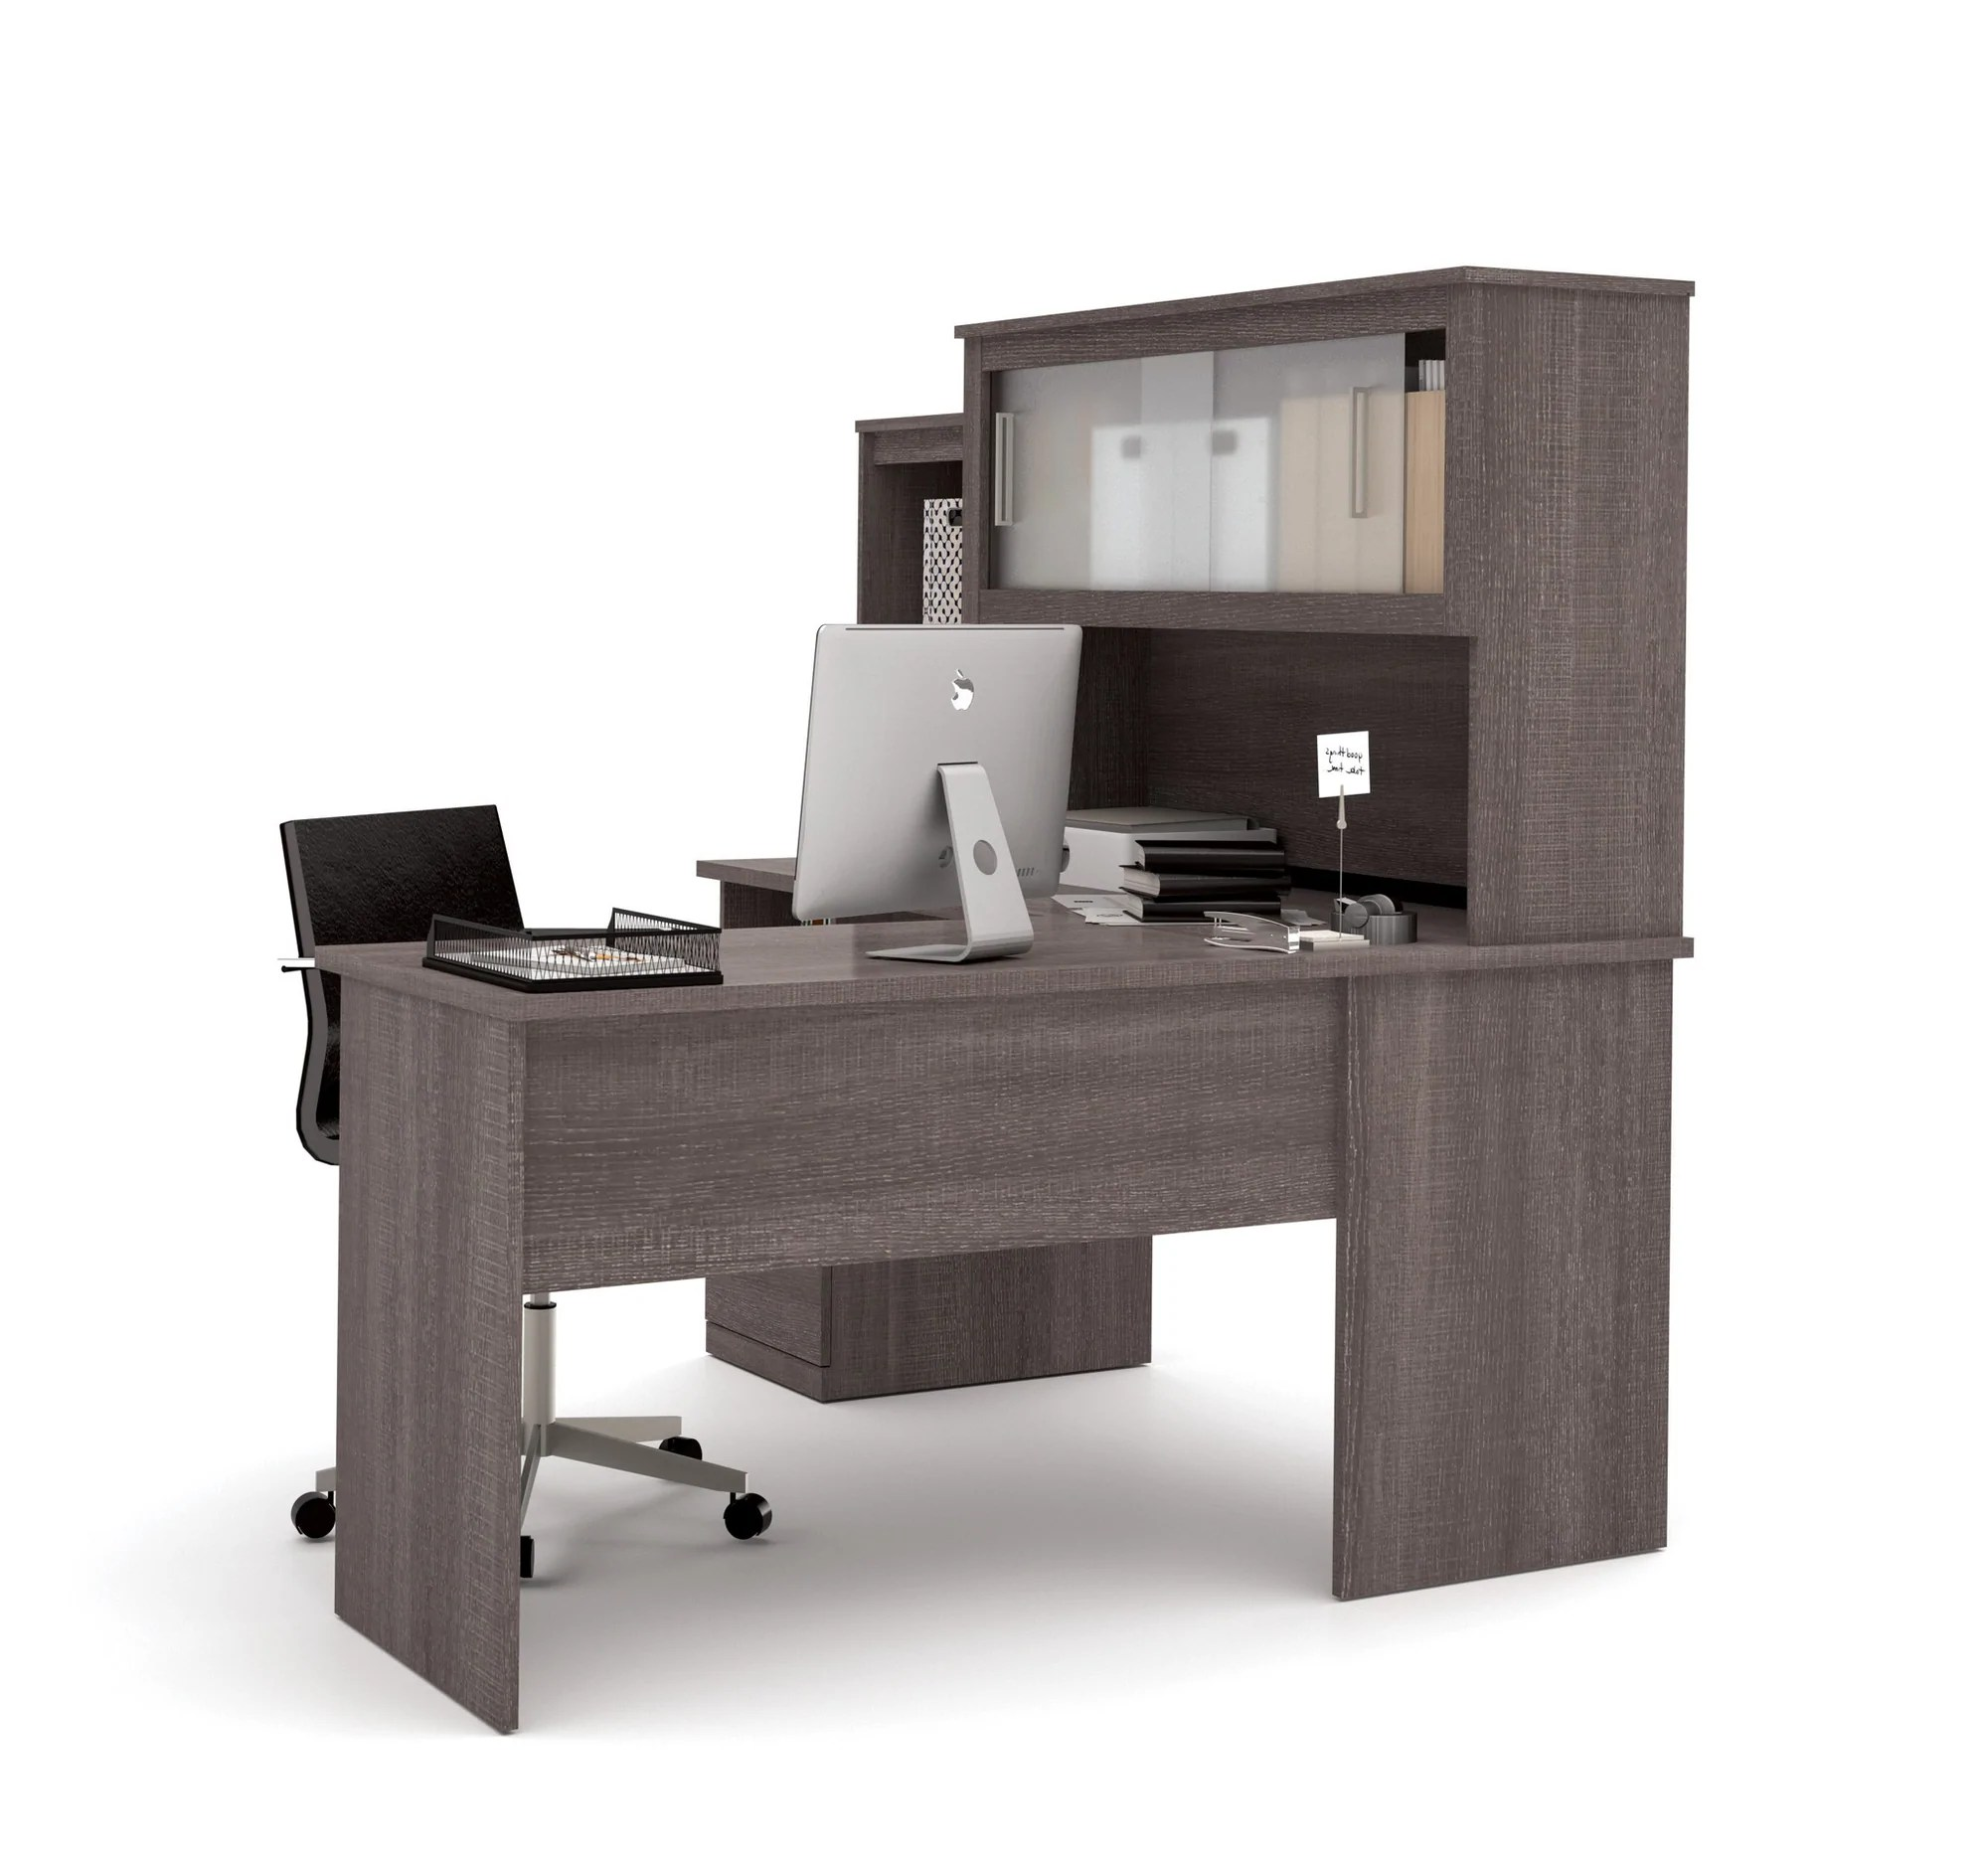 Modern Bark Gray Lshaped Desk and Hutch with Frosted Glass Doors  OfficeDeskcom